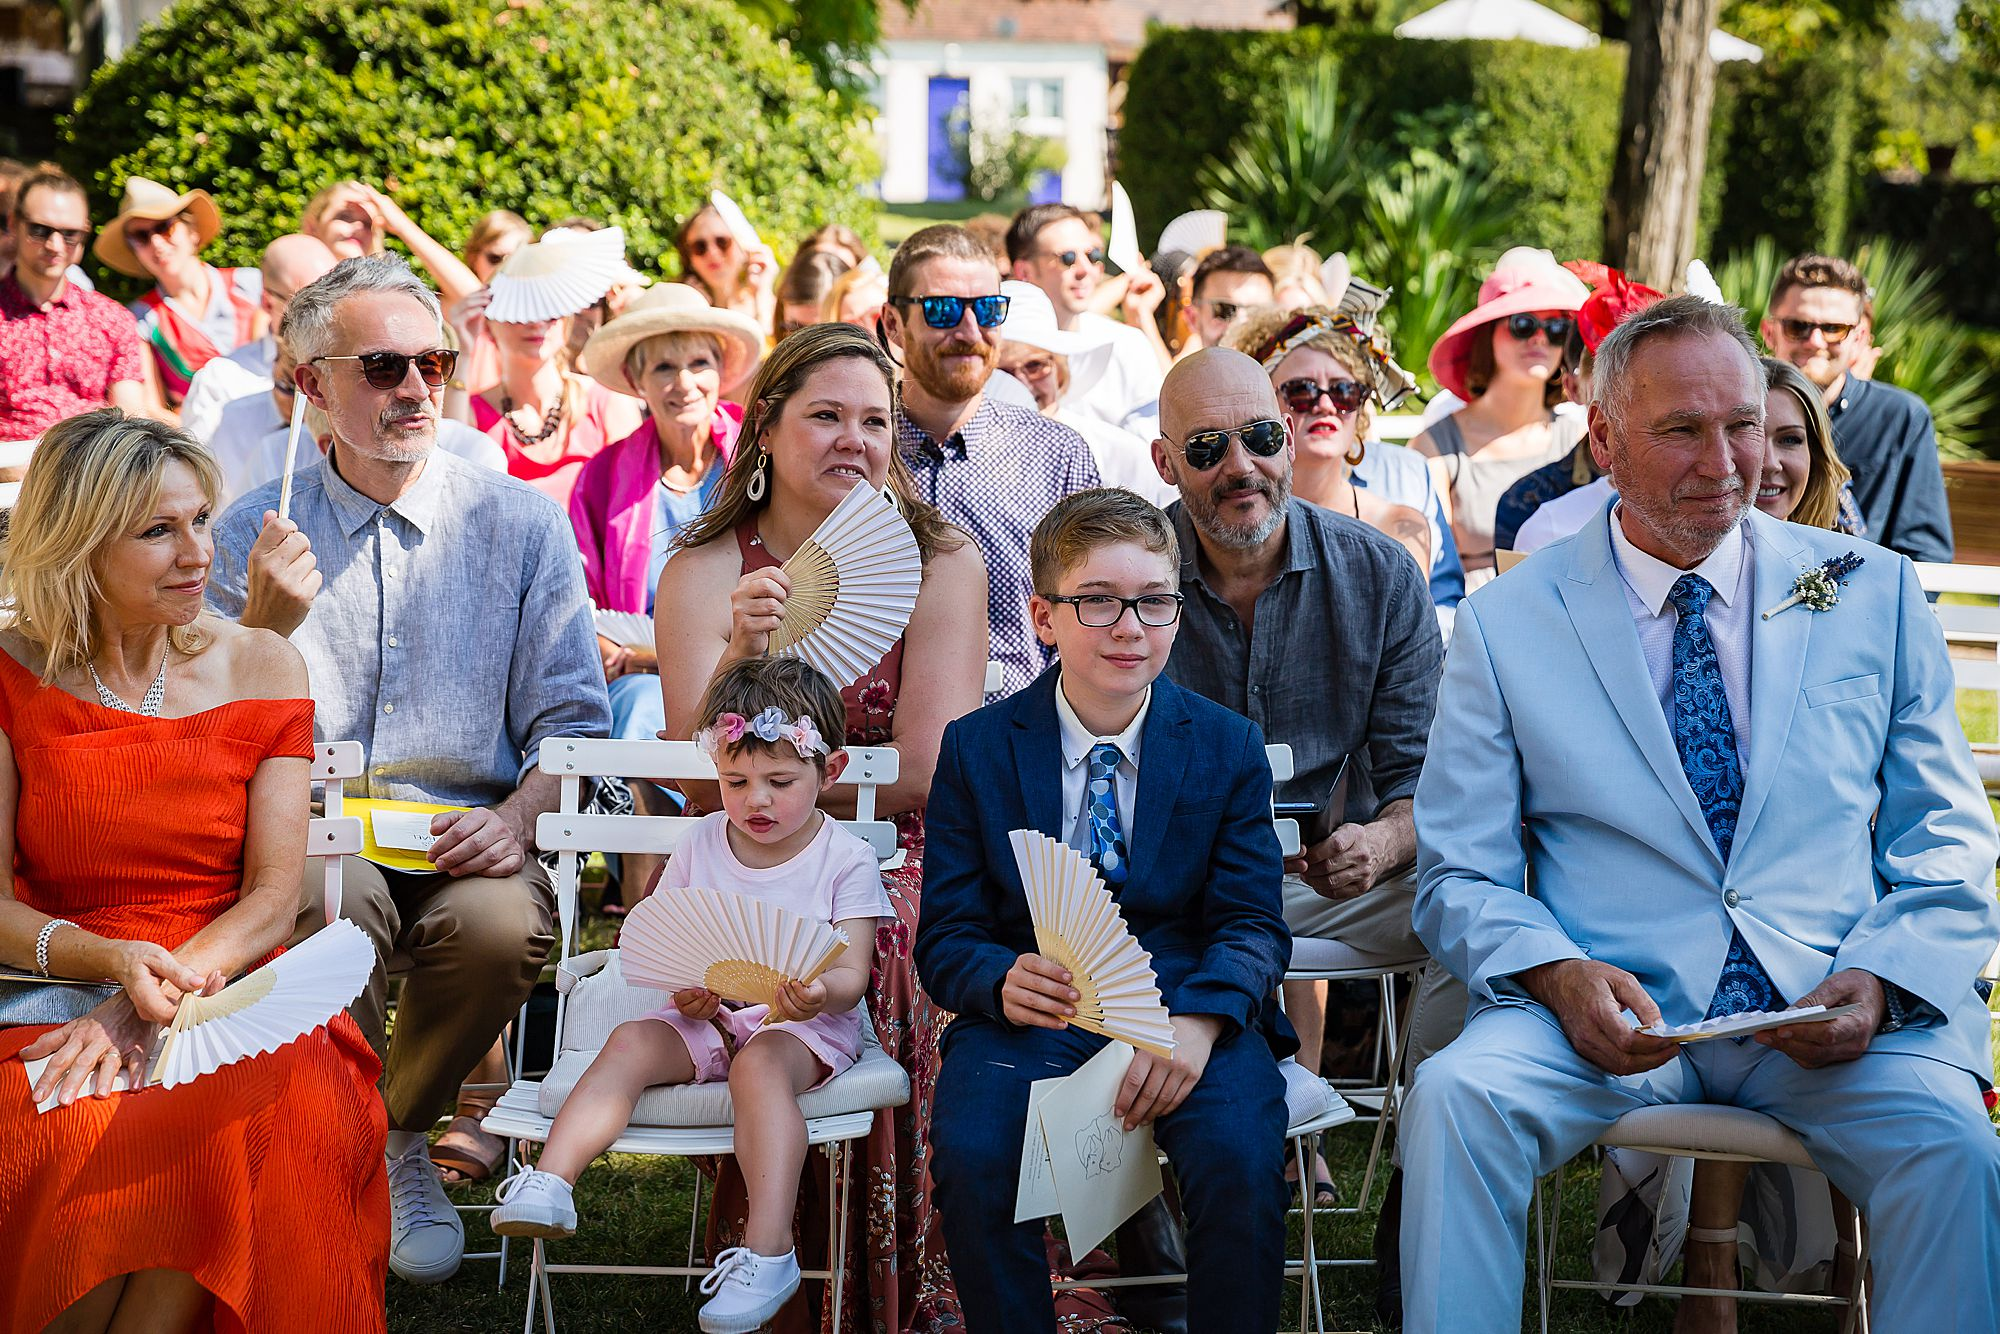 guests watch gay wedding ceremony in France